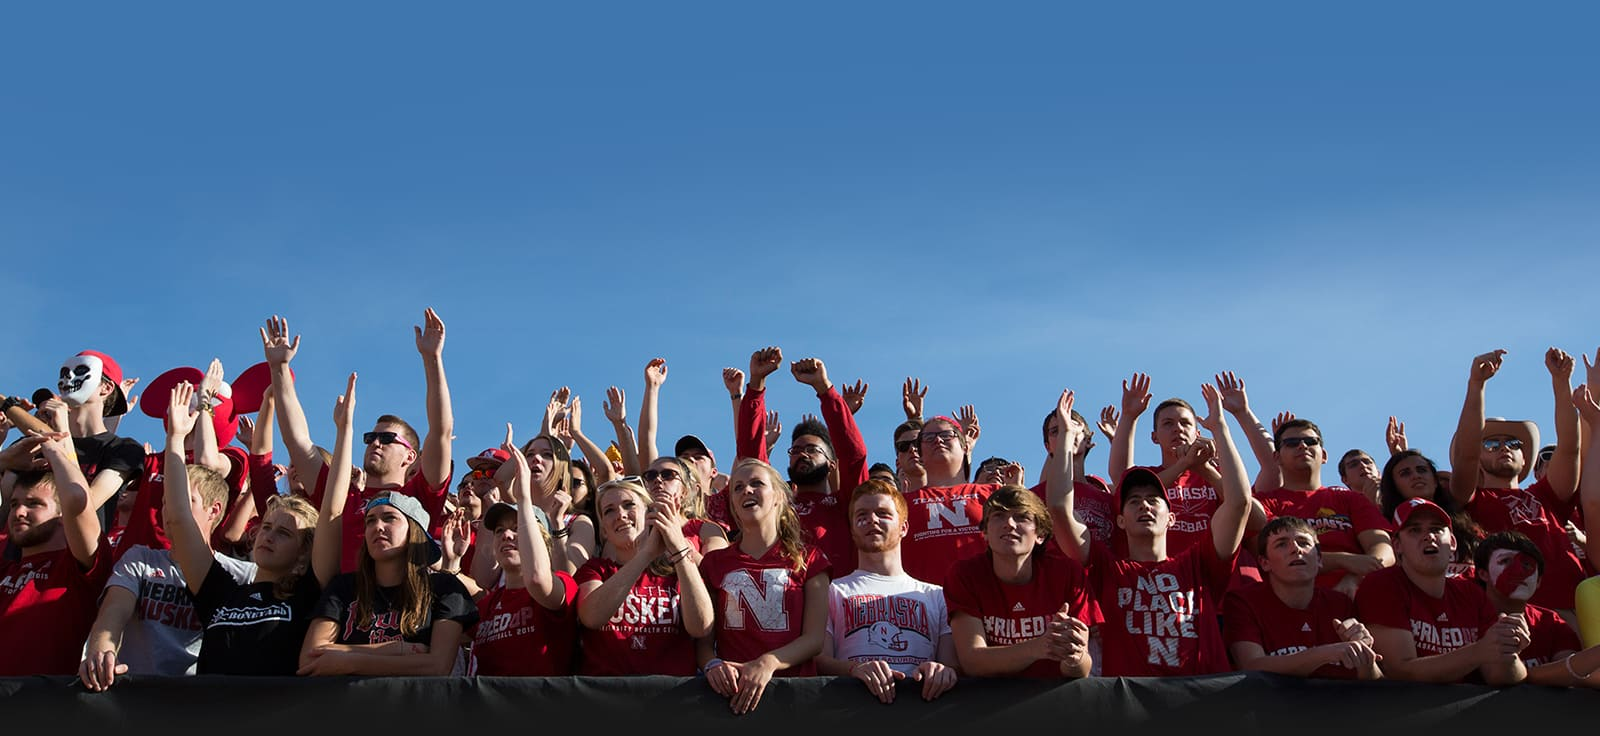 Fans cheer at a Nebraska football game